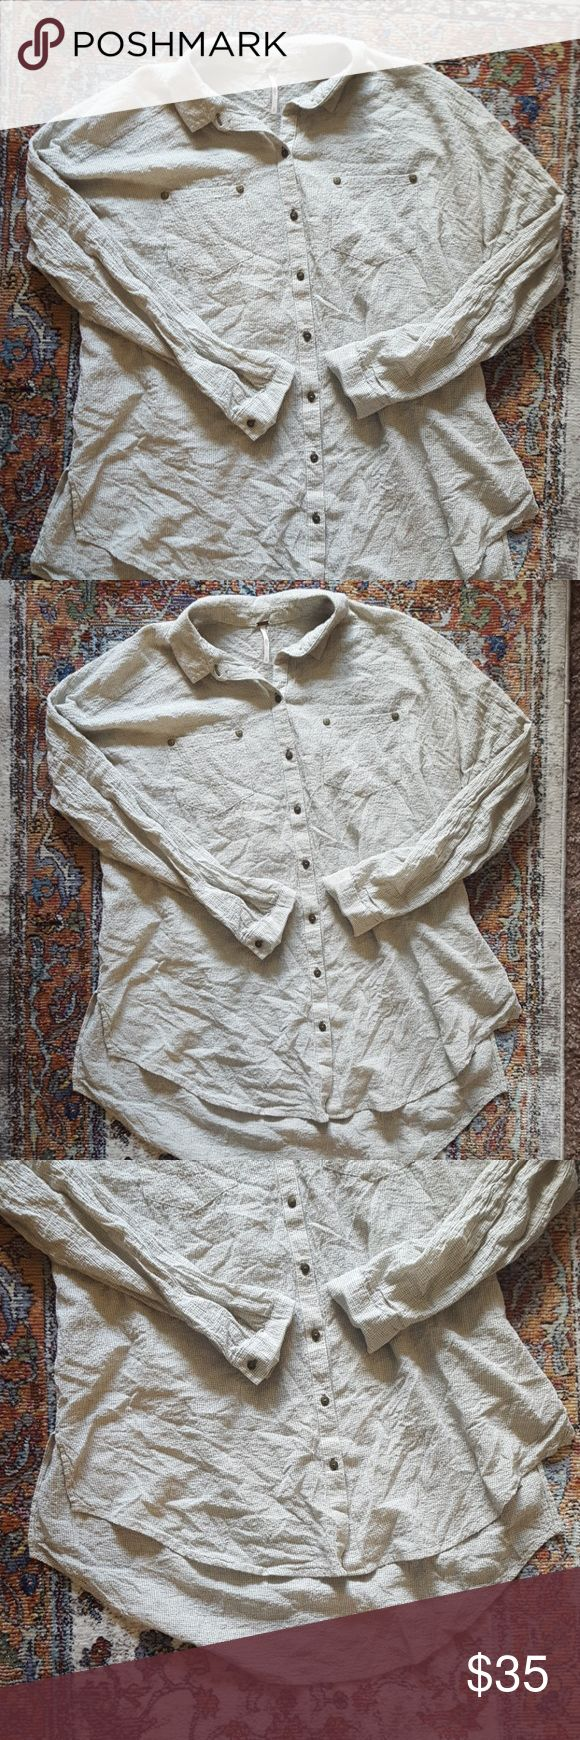 Free People XS Love Her Madly Puckered Grid Top Make an offer! :) Free People Tops Blouses